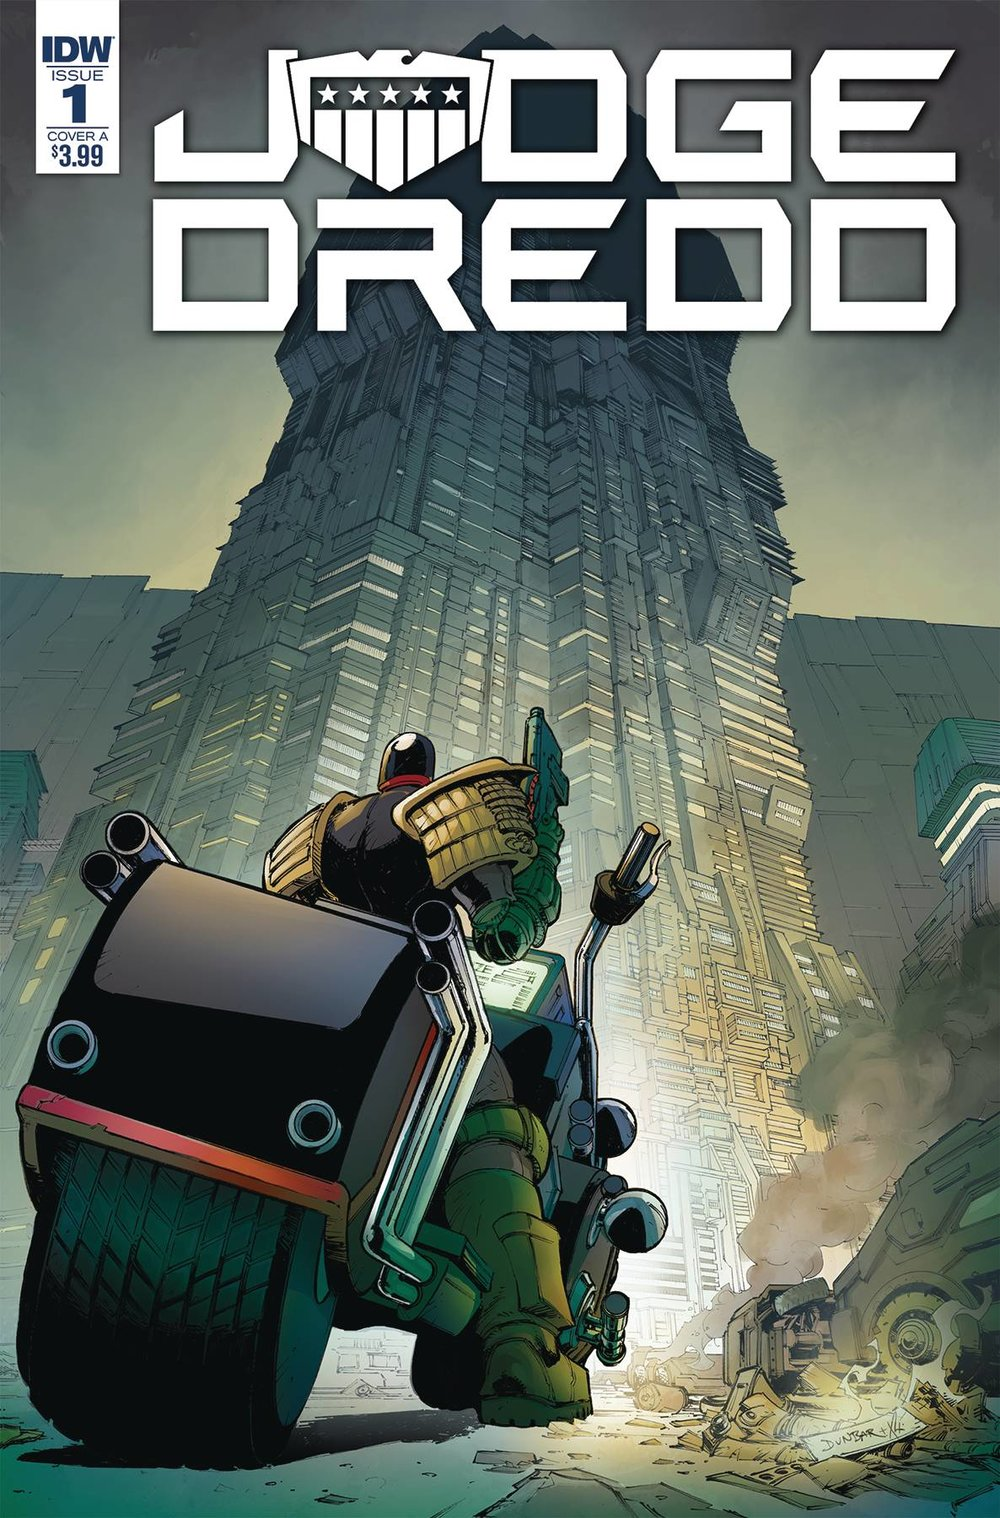 JUDGE DREDD UNDER SIEGE 1 of 4 CVR A DUNBAR.jpg